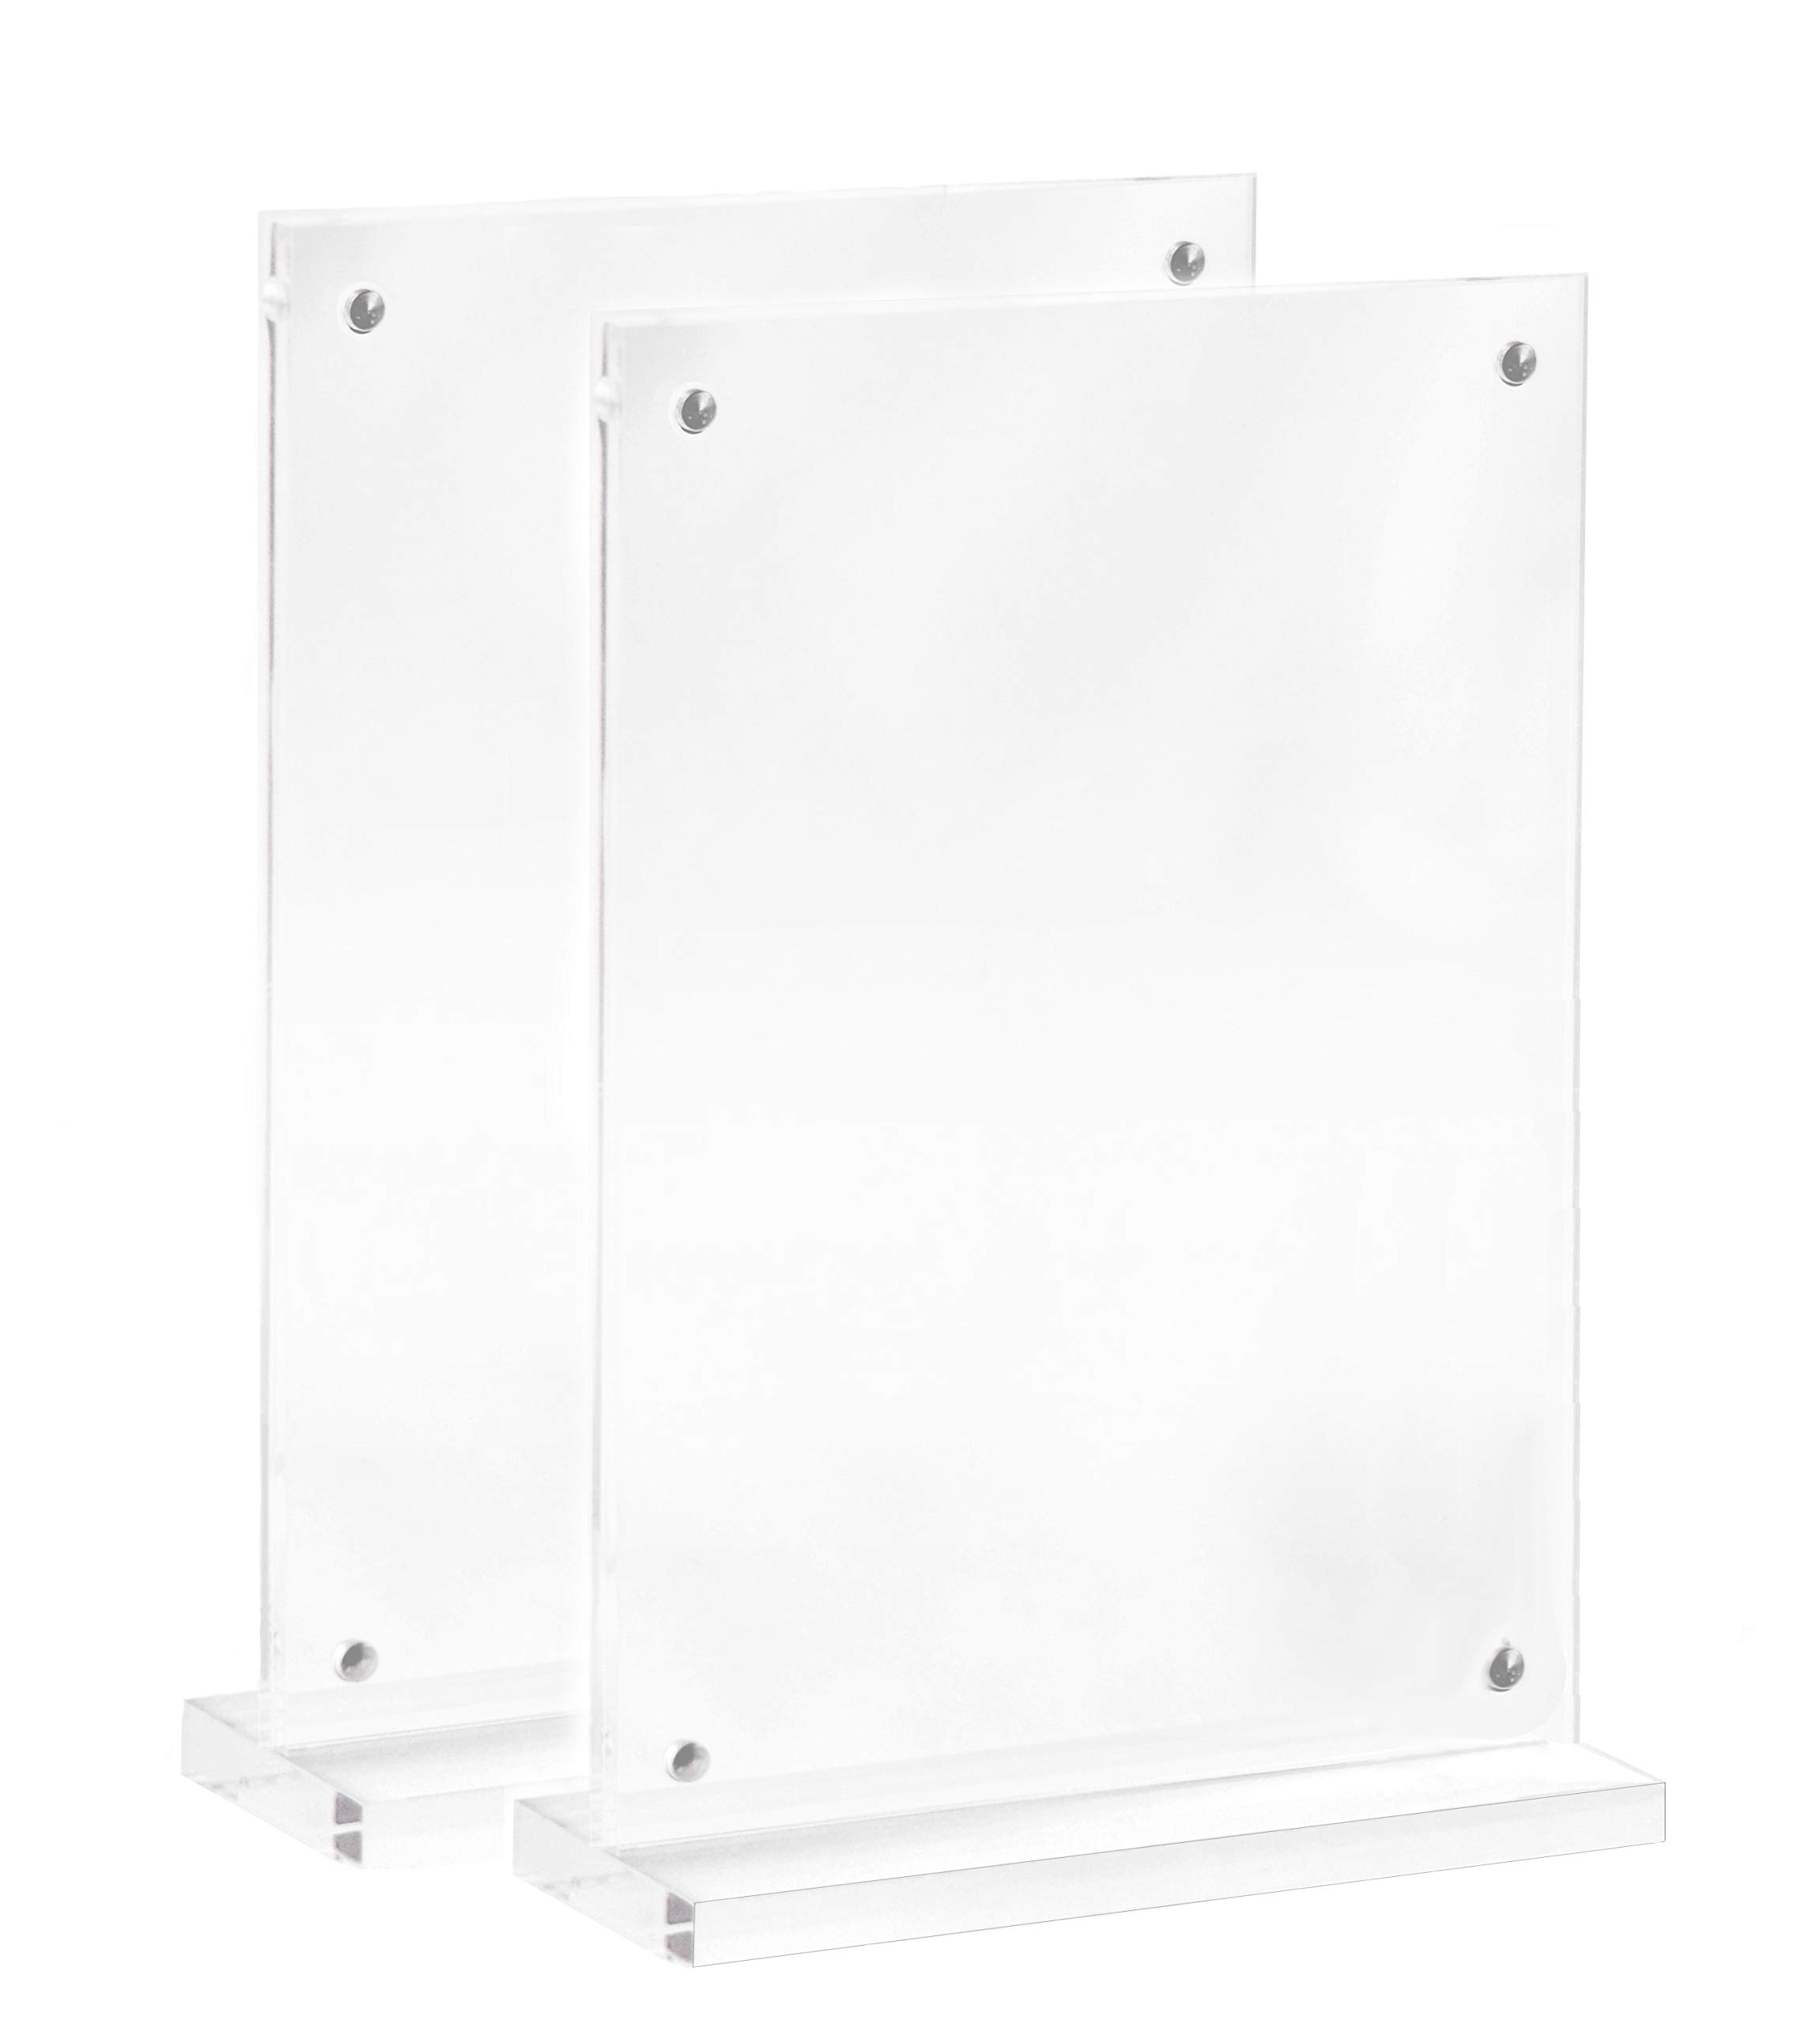 Sloan Creations 5x7 Magnetic Portrait T Shaped Acrylic Double Sided Desktop Photo Frame/Menu Holder/Sign Display (2)